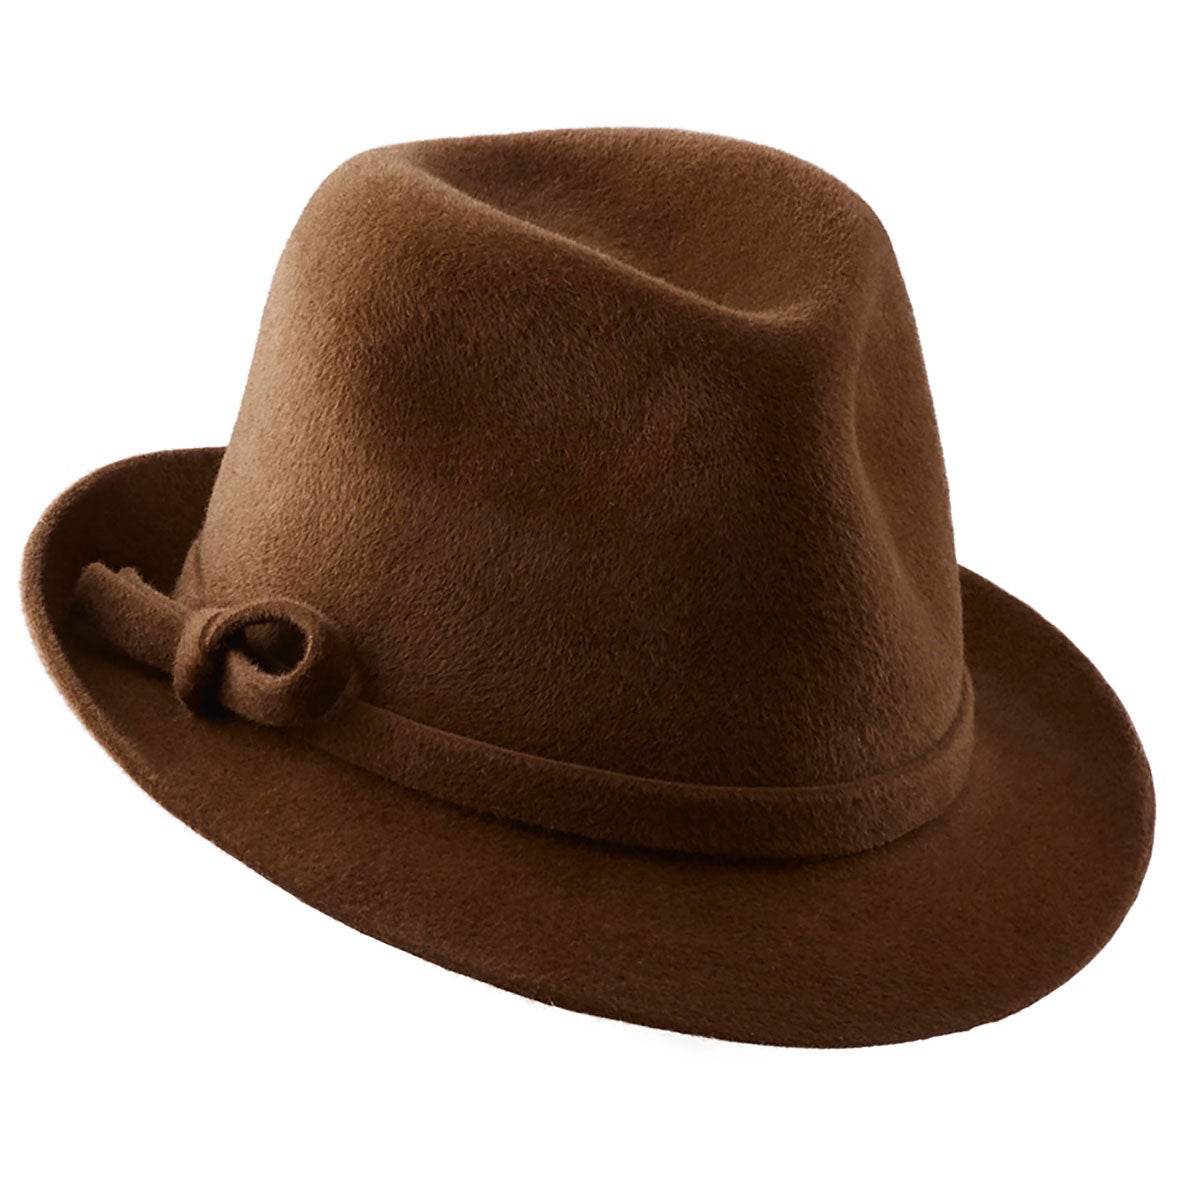 Women's Vintage Hats | Old Fashioned Hats | Retro Hats Anice $295.00 AT vintagedancer.com